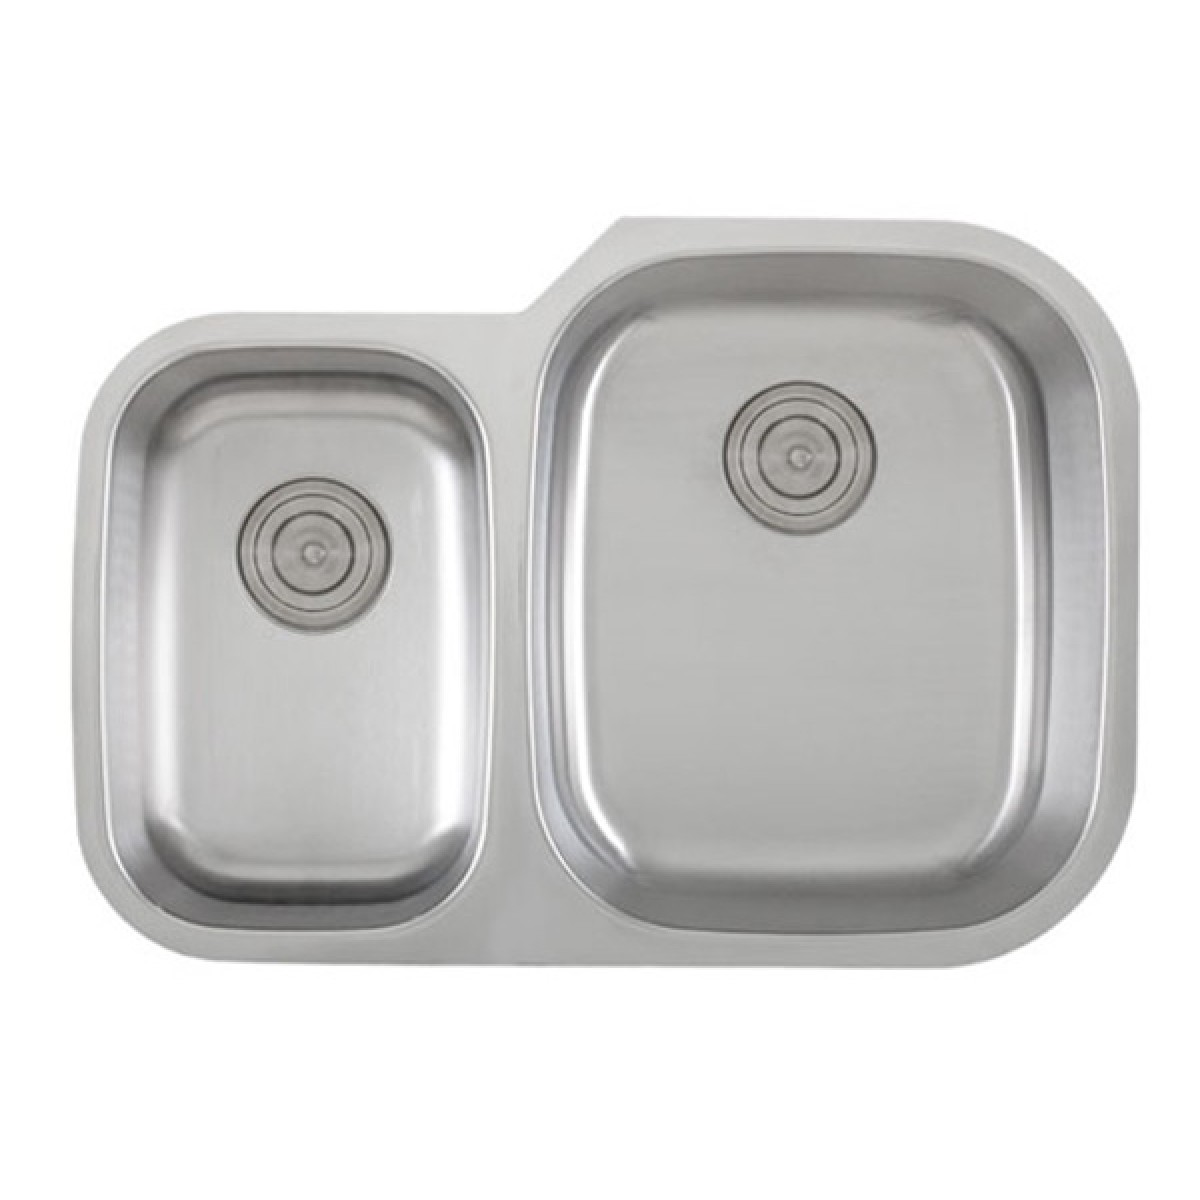 30 inch stainless steel undermount 40 60 double bowl kitchen sink   18 gauge 30 inch 18 gauge stainless steel undermount 40 60 double bowl      rh   emoderndecor com